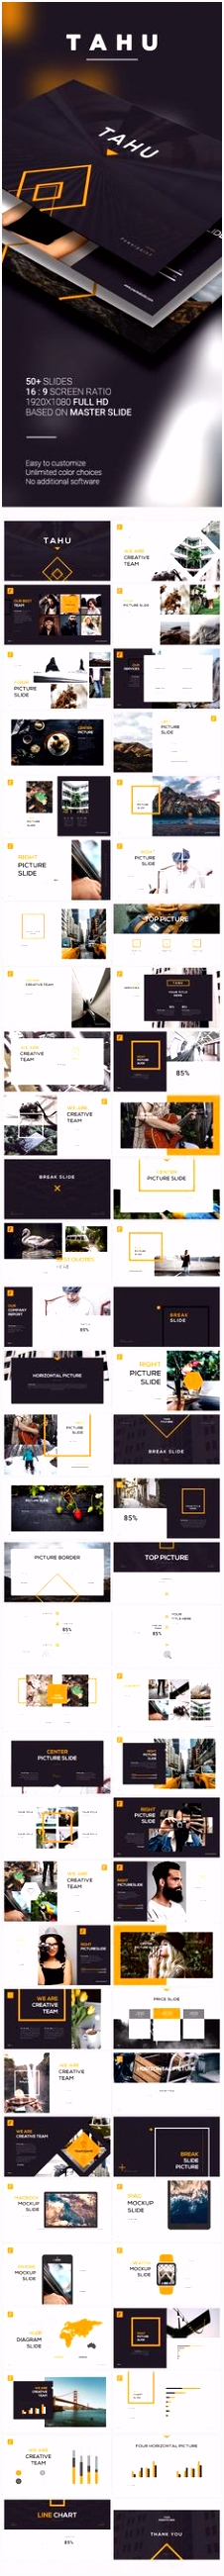 855 Best Powerpoint Template images